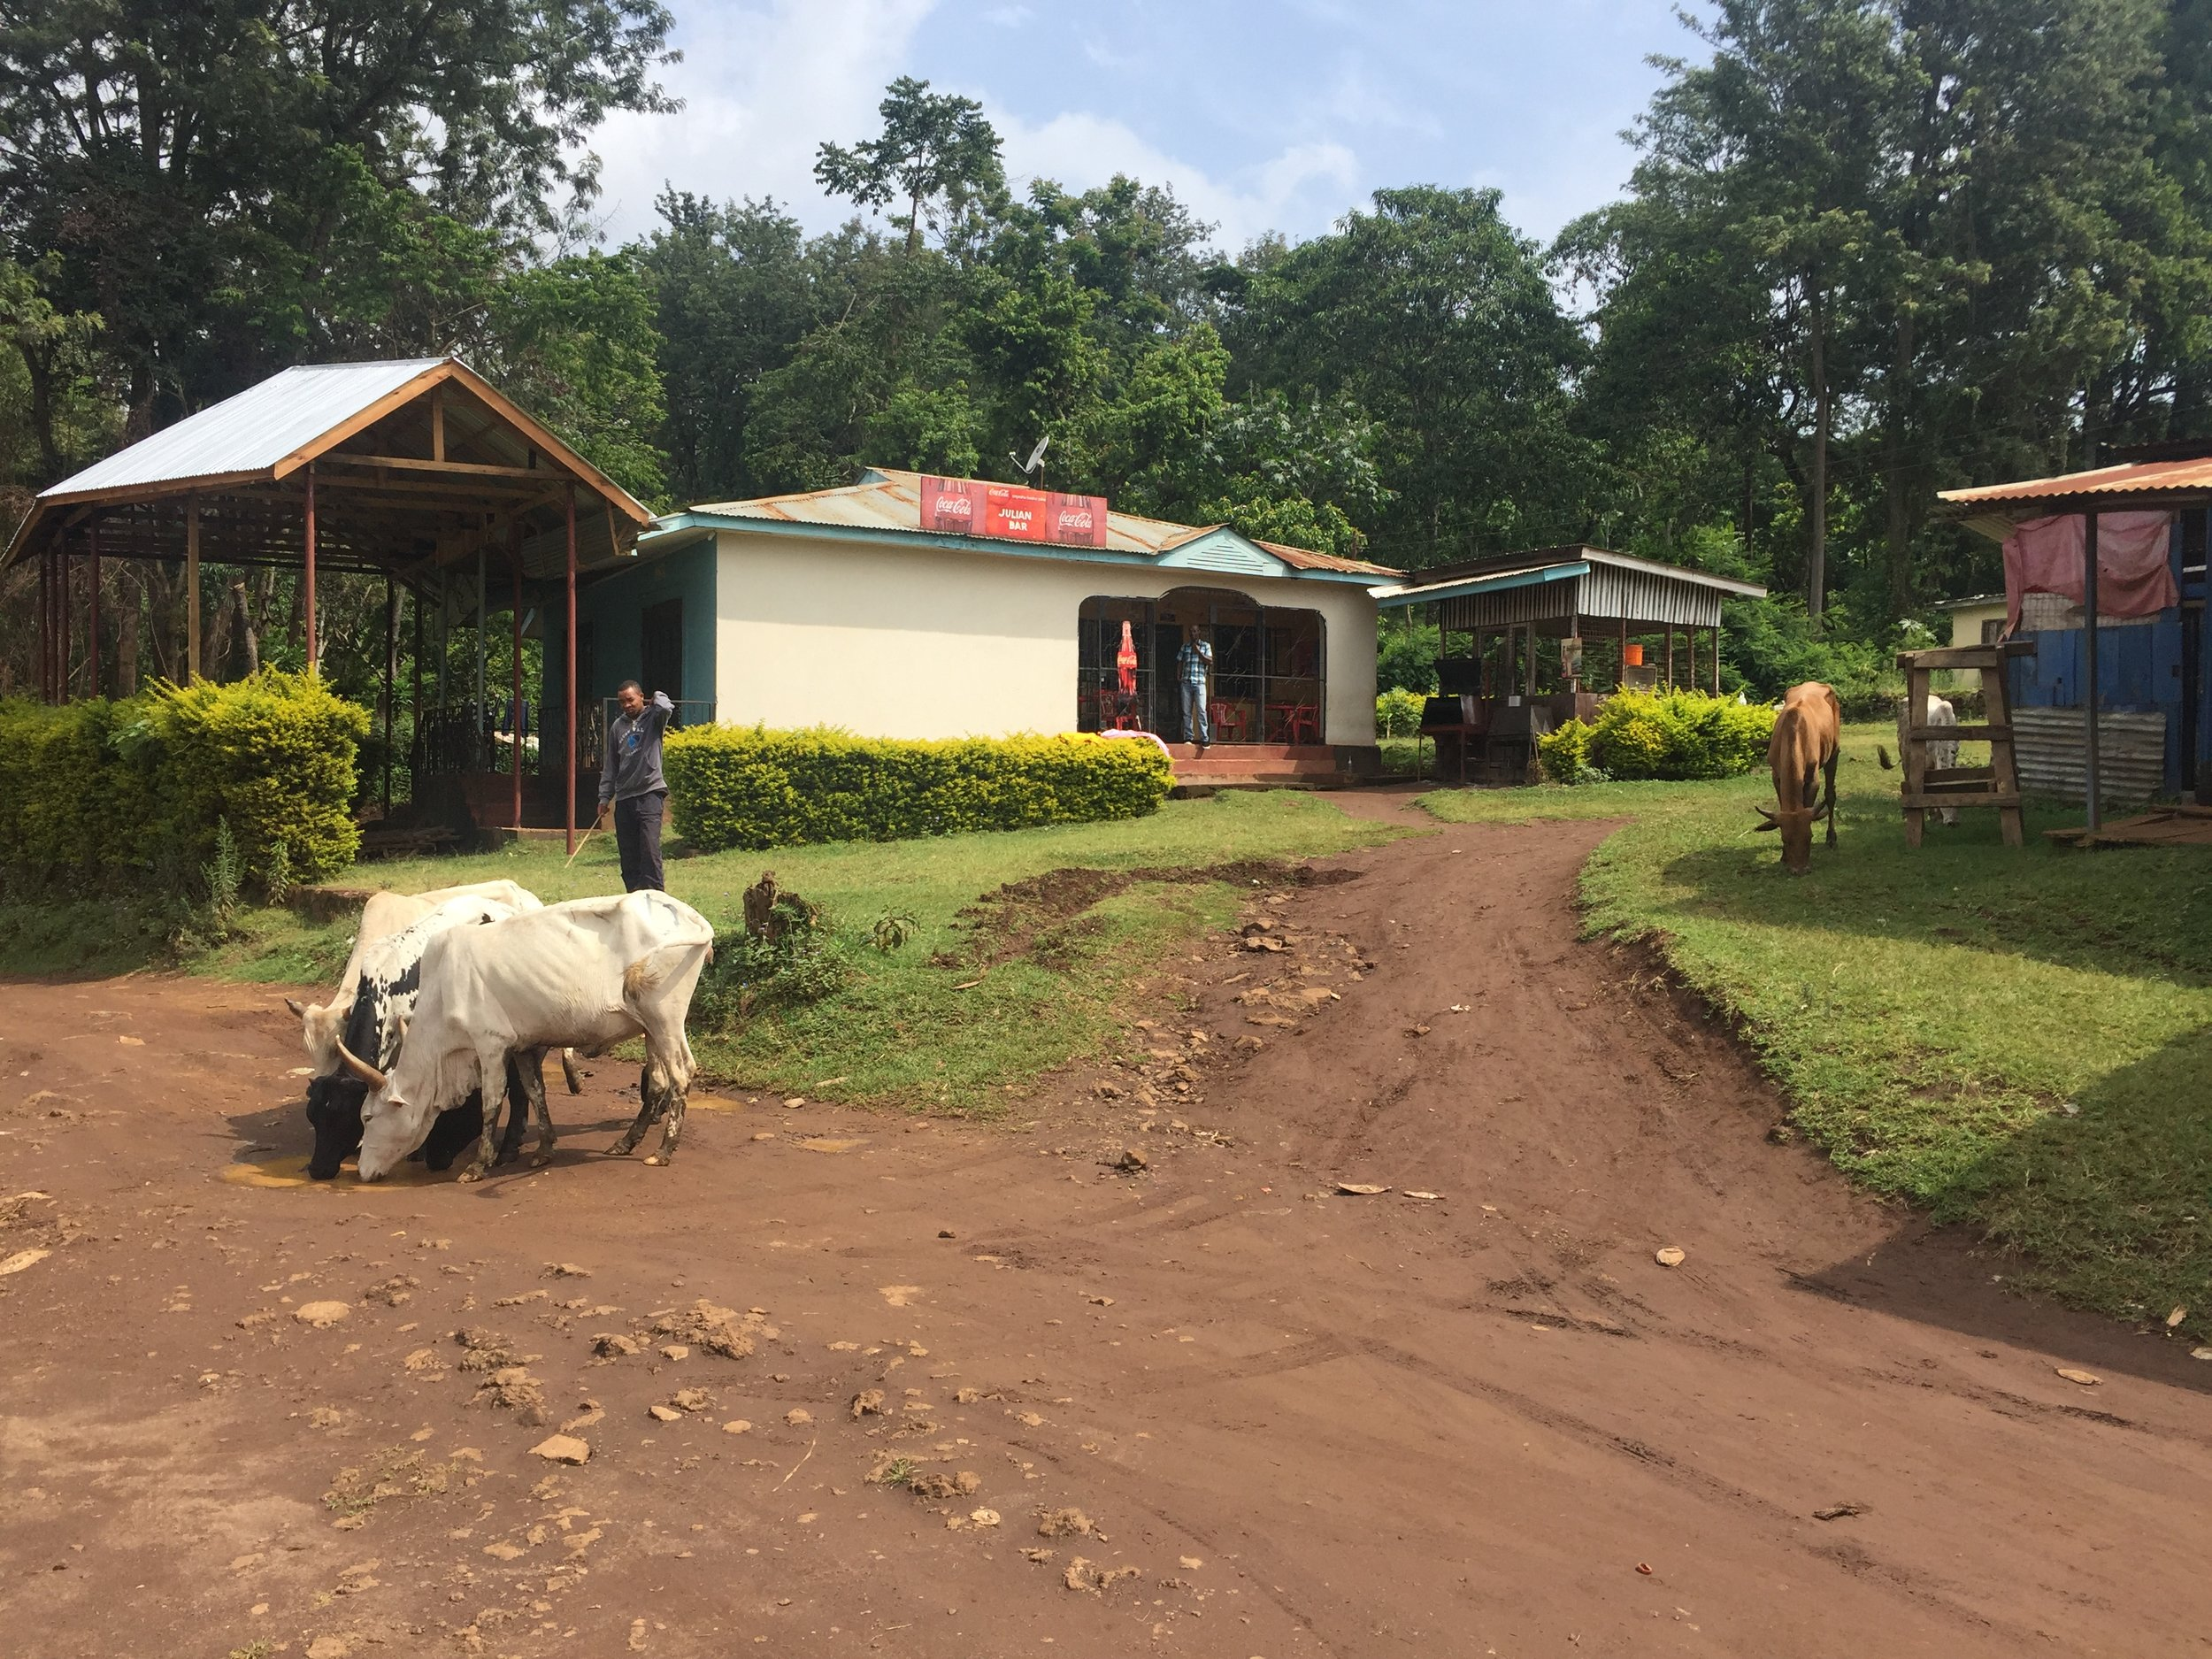 A small town in the foothills of Kilimanjaro.